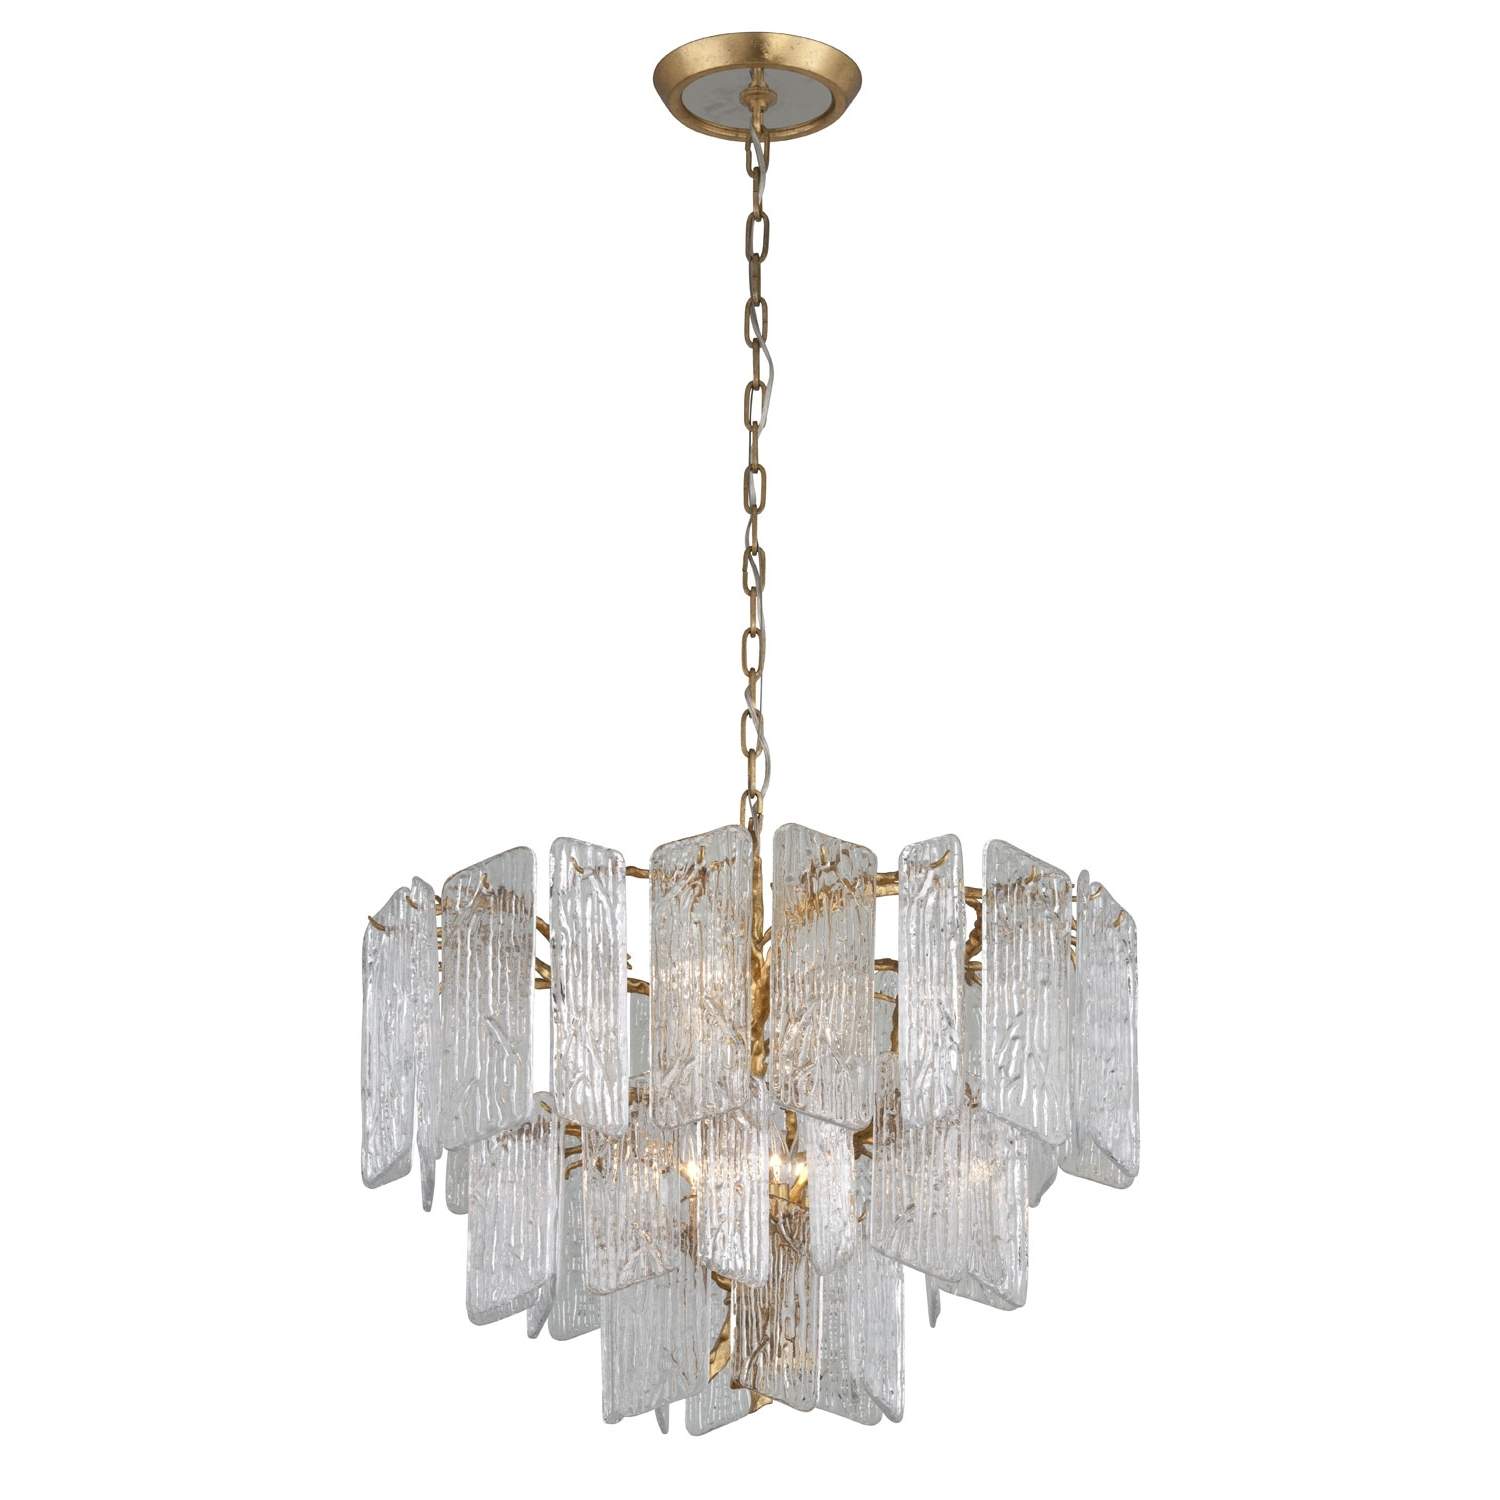 Over 300 Chandelier Styles To With Fashionable Art Deco Chandeliers (View 10 of 15)